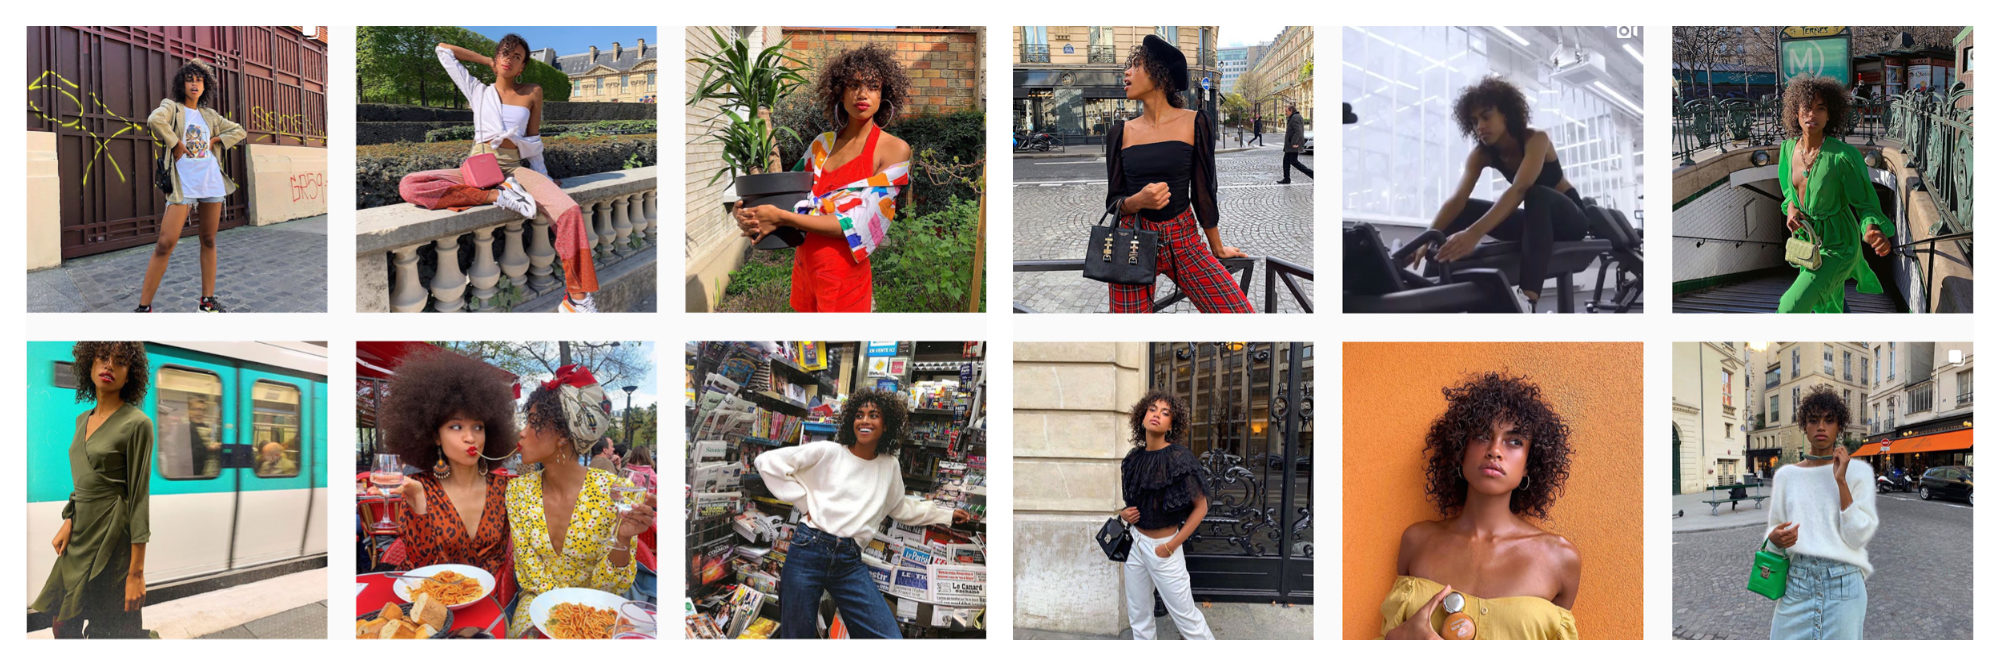 A selection of images of French Instagram fashion influencer Hanna Lhoumeau.